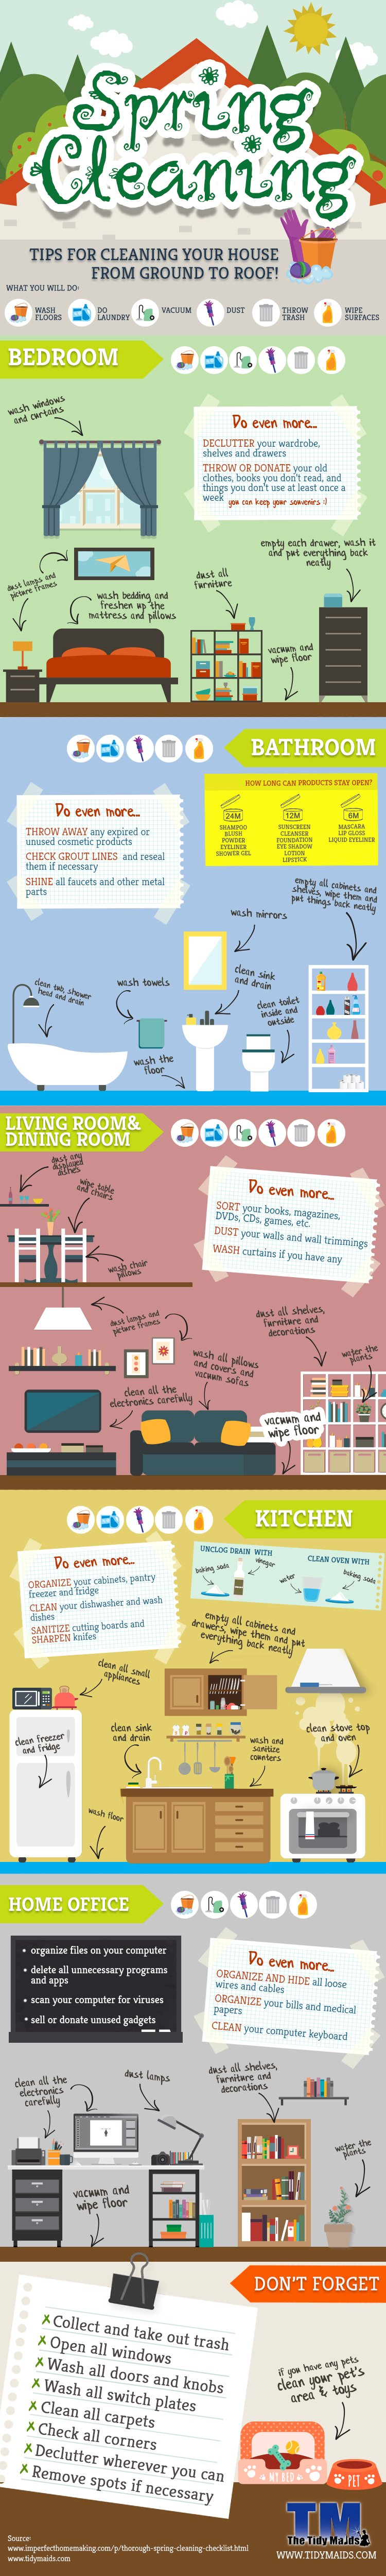 Spring cleaning tips and tricks from The Tidy Maids! http://www.thetidymaids.com/infographic-spring-cleaning-tips-and-tricks/